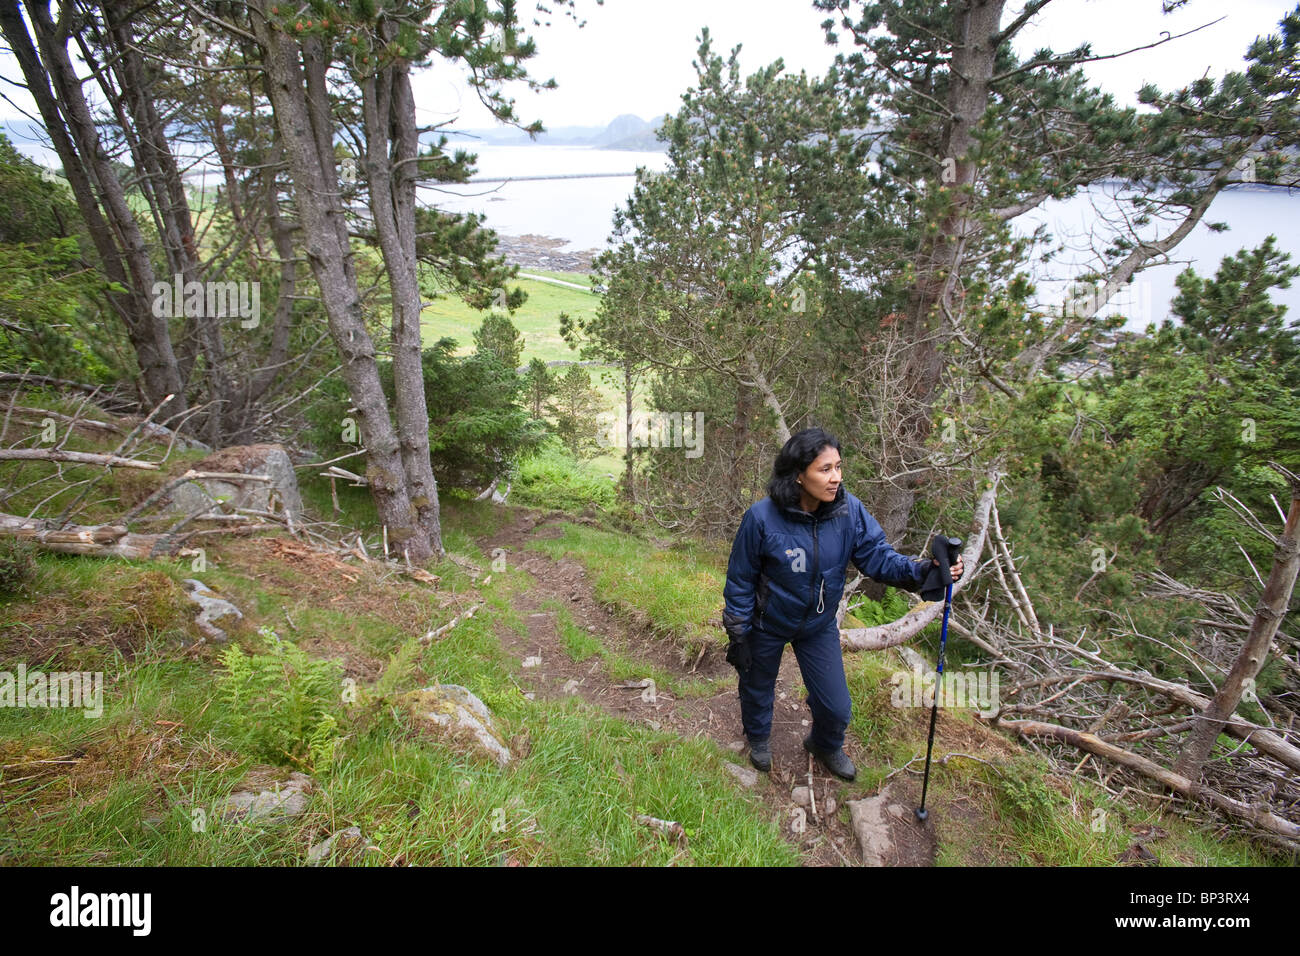 Hiker on one of the trails on the island Runde on the west coast of Norway. - Stock Image